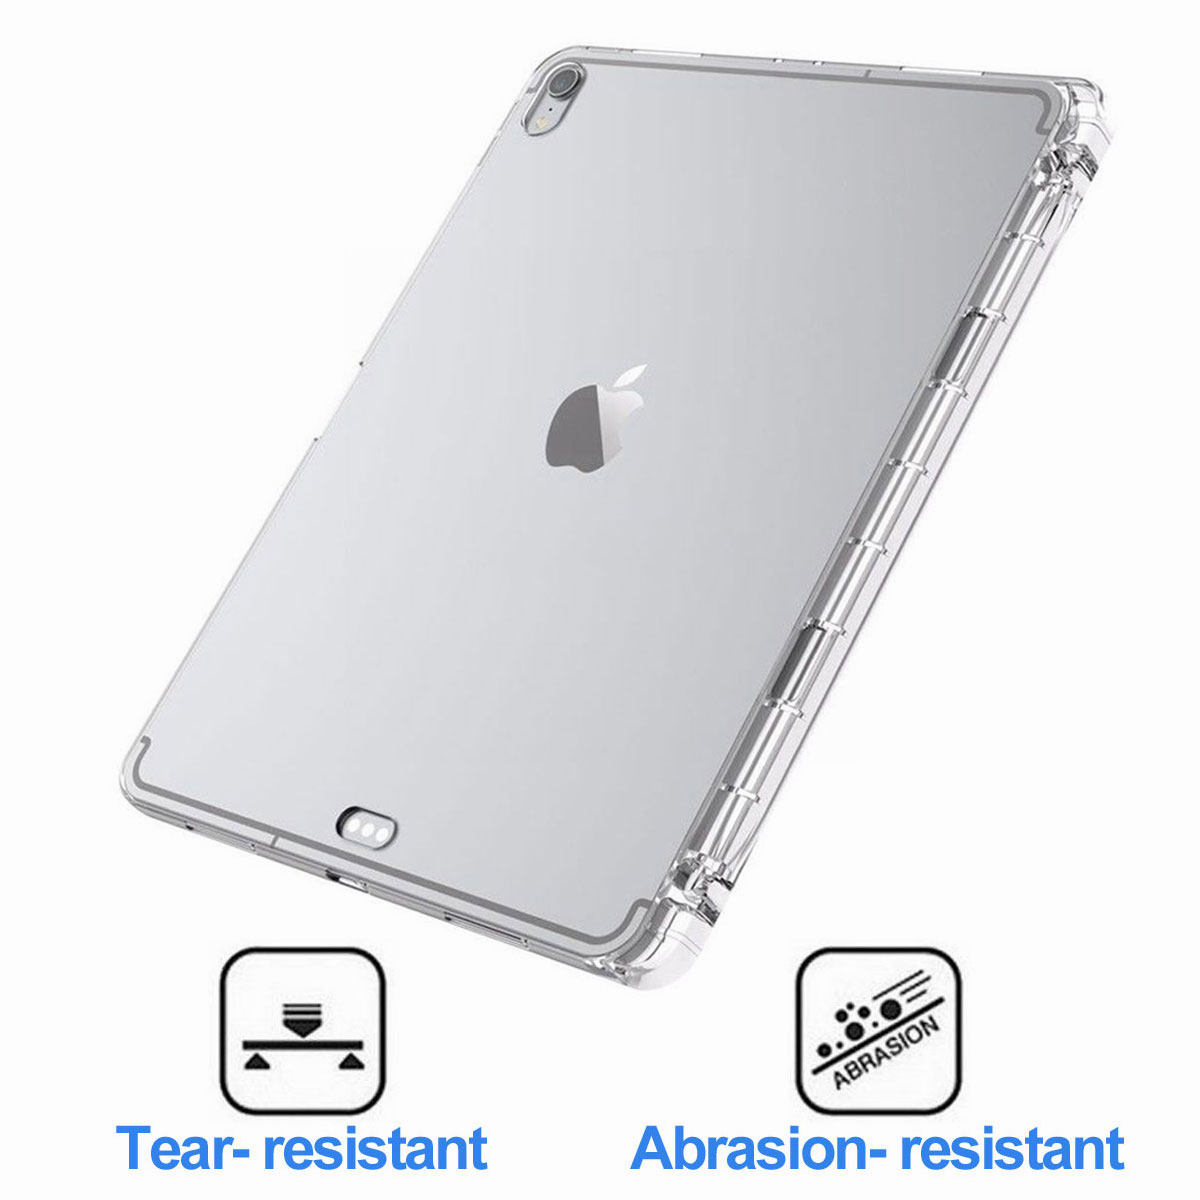 Transparent-Clear-Case-For-New-iPad-Pro-11-Inch-2018-Slim-Protective-Case-Cover thumbnail 20